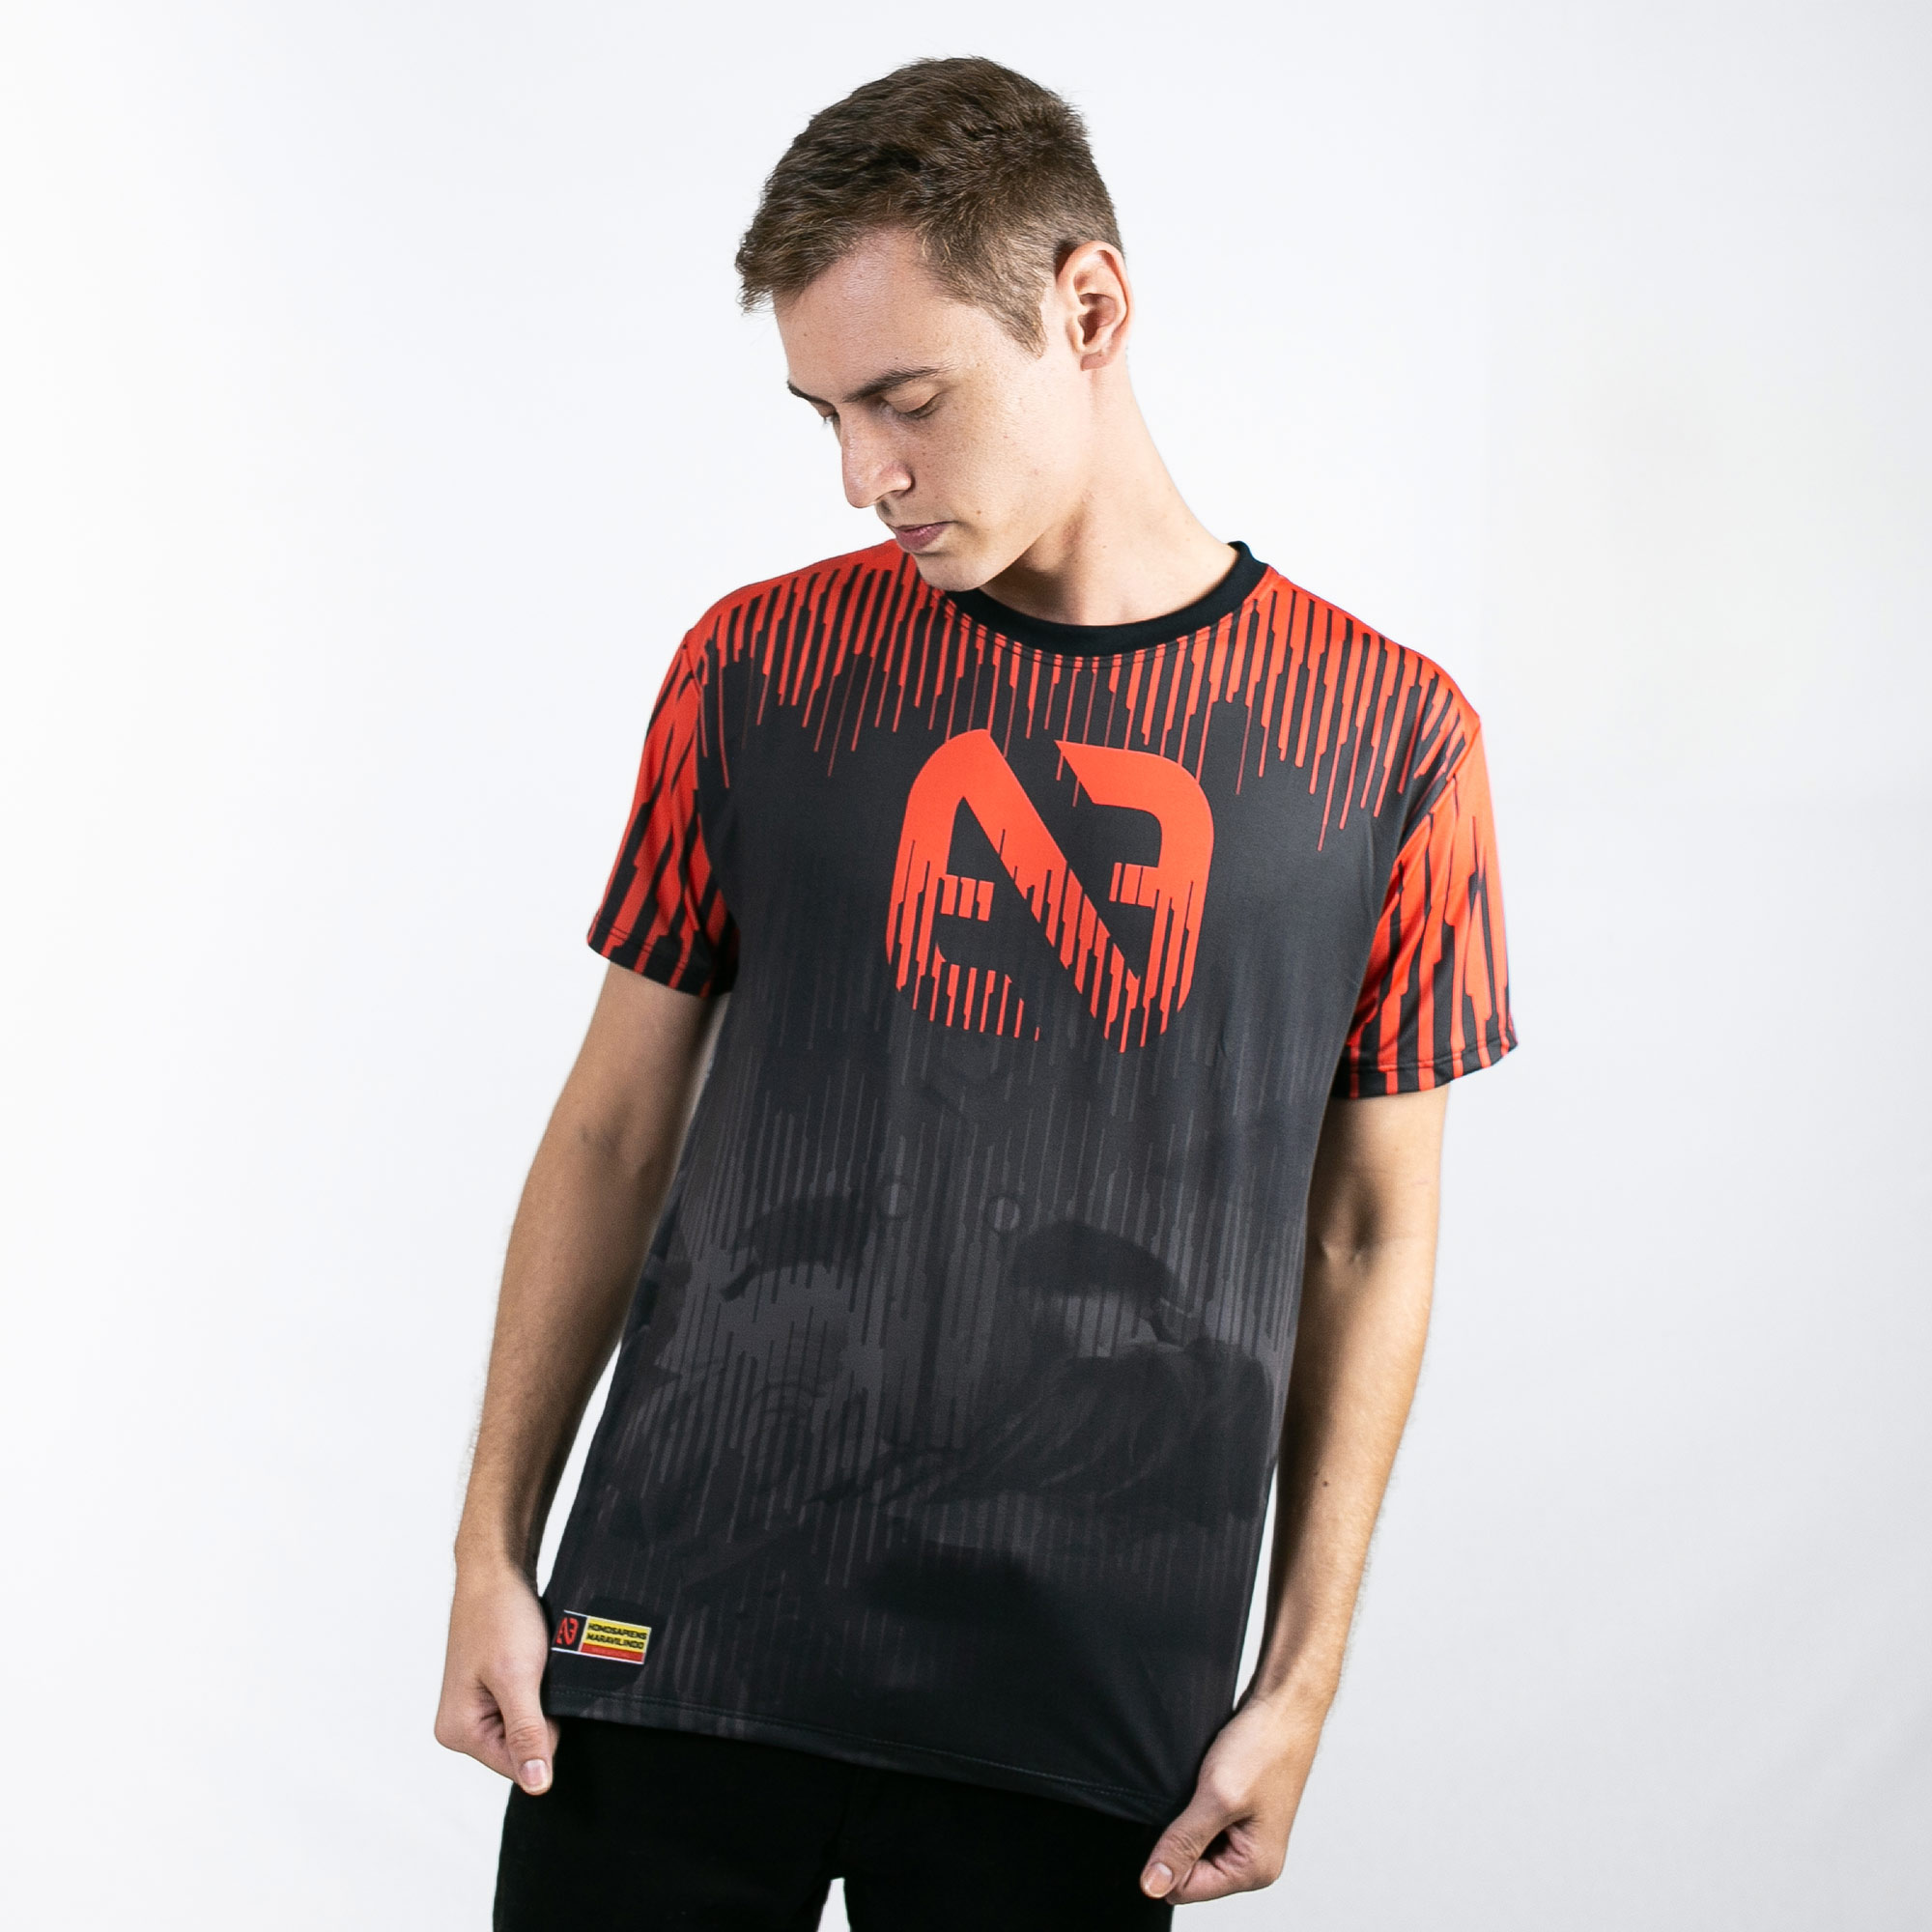 Camiseta Jersey Aedrons Oficial